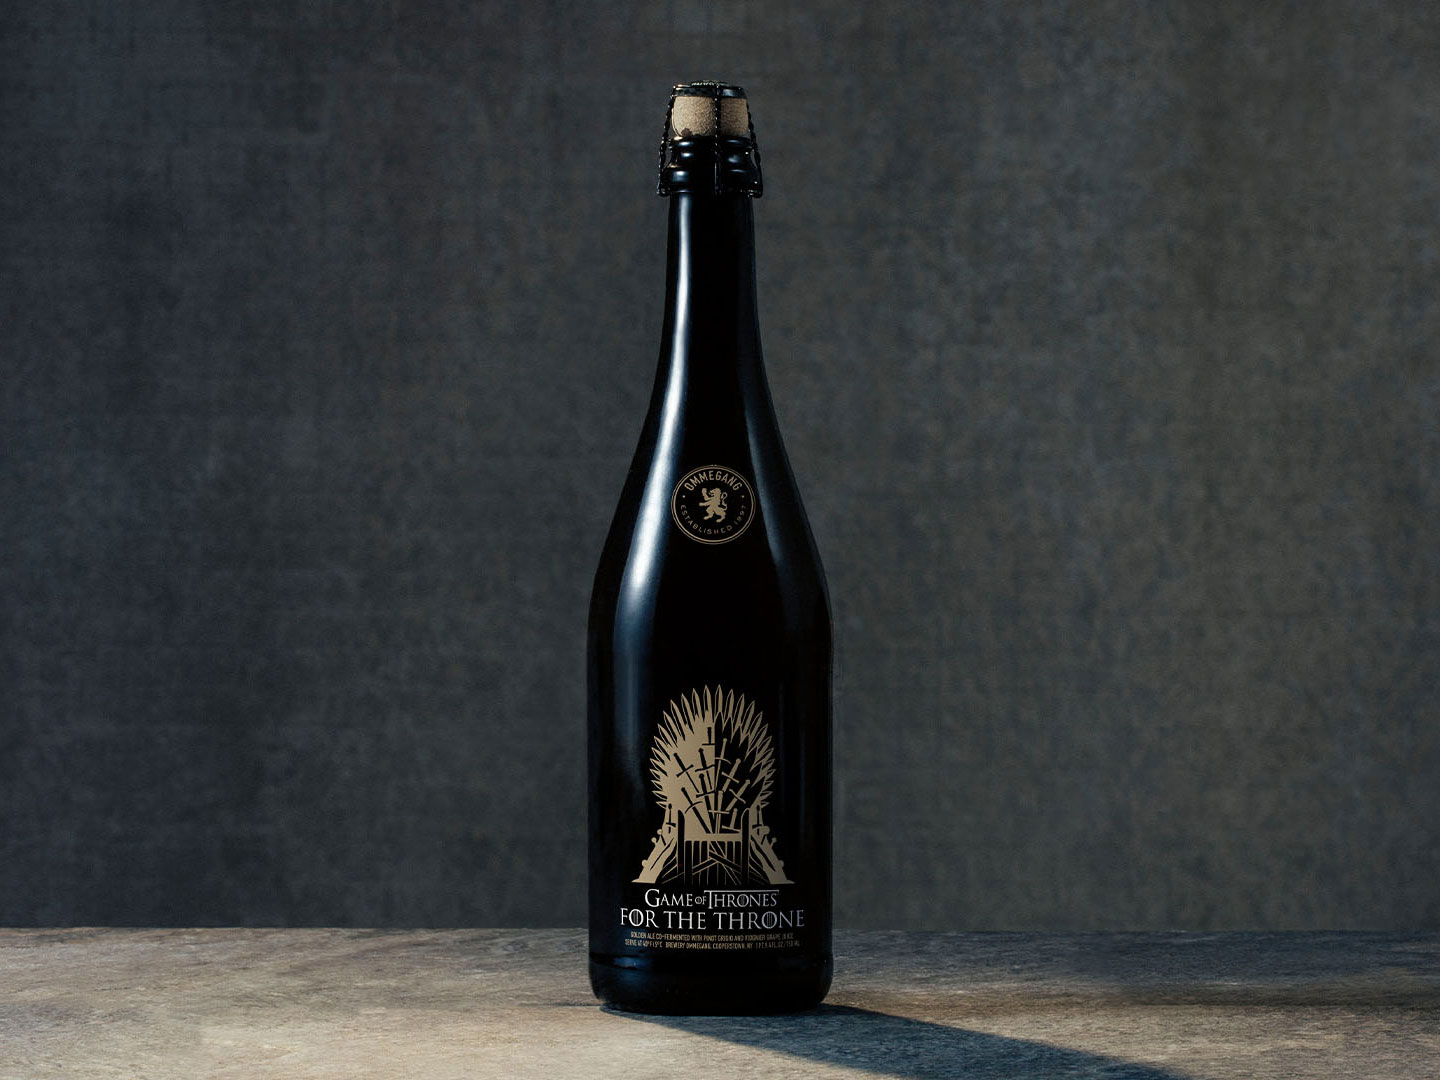 Another 'Game of Thrones' Beer Will Arrive in Time for the Final Season